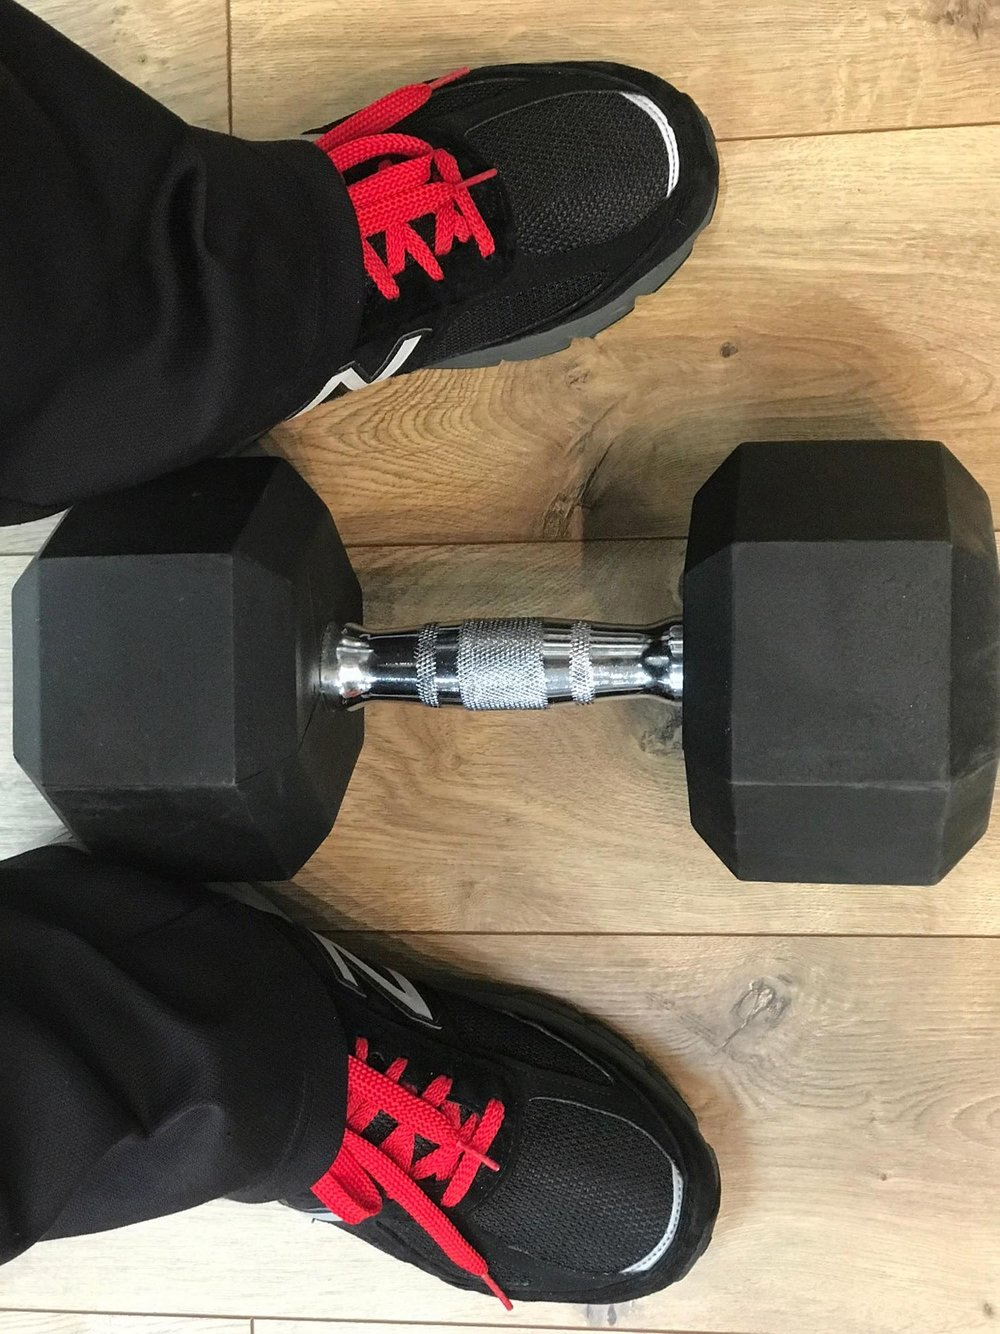 Left Shoes and Weight